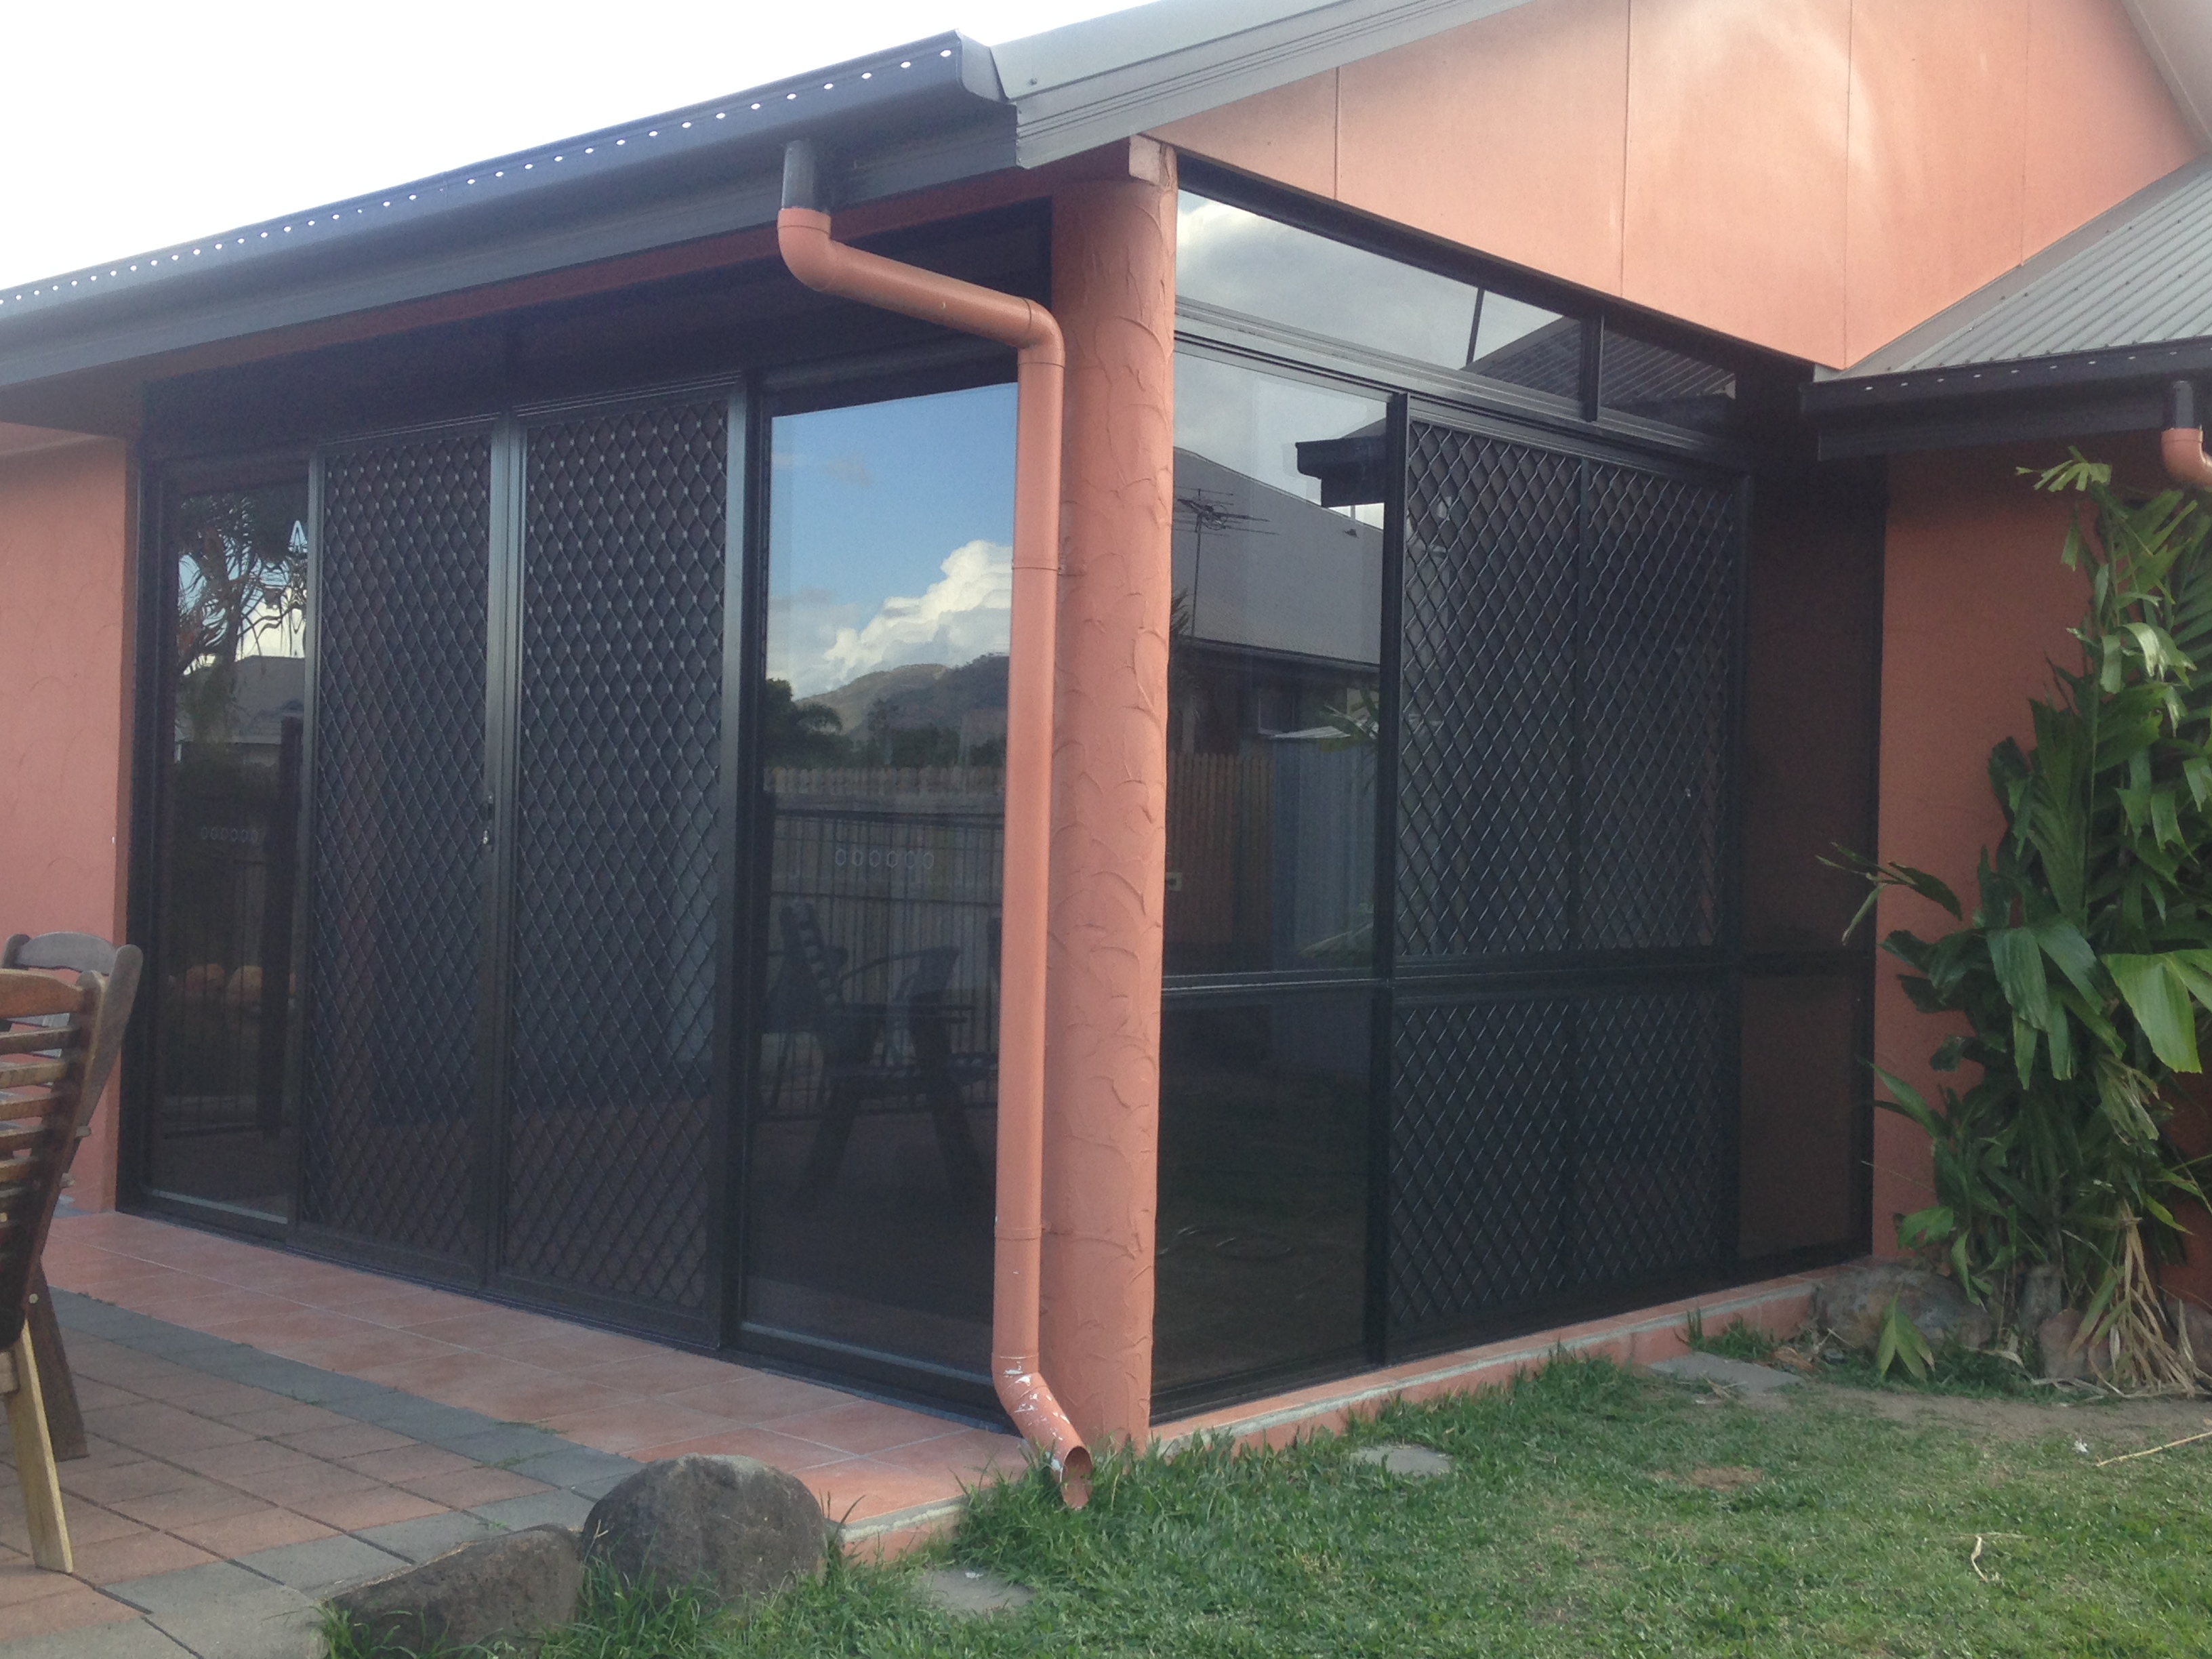 Centre Opening Sliding Glass Door and Combination Centre Opening Sliding Glass Windows